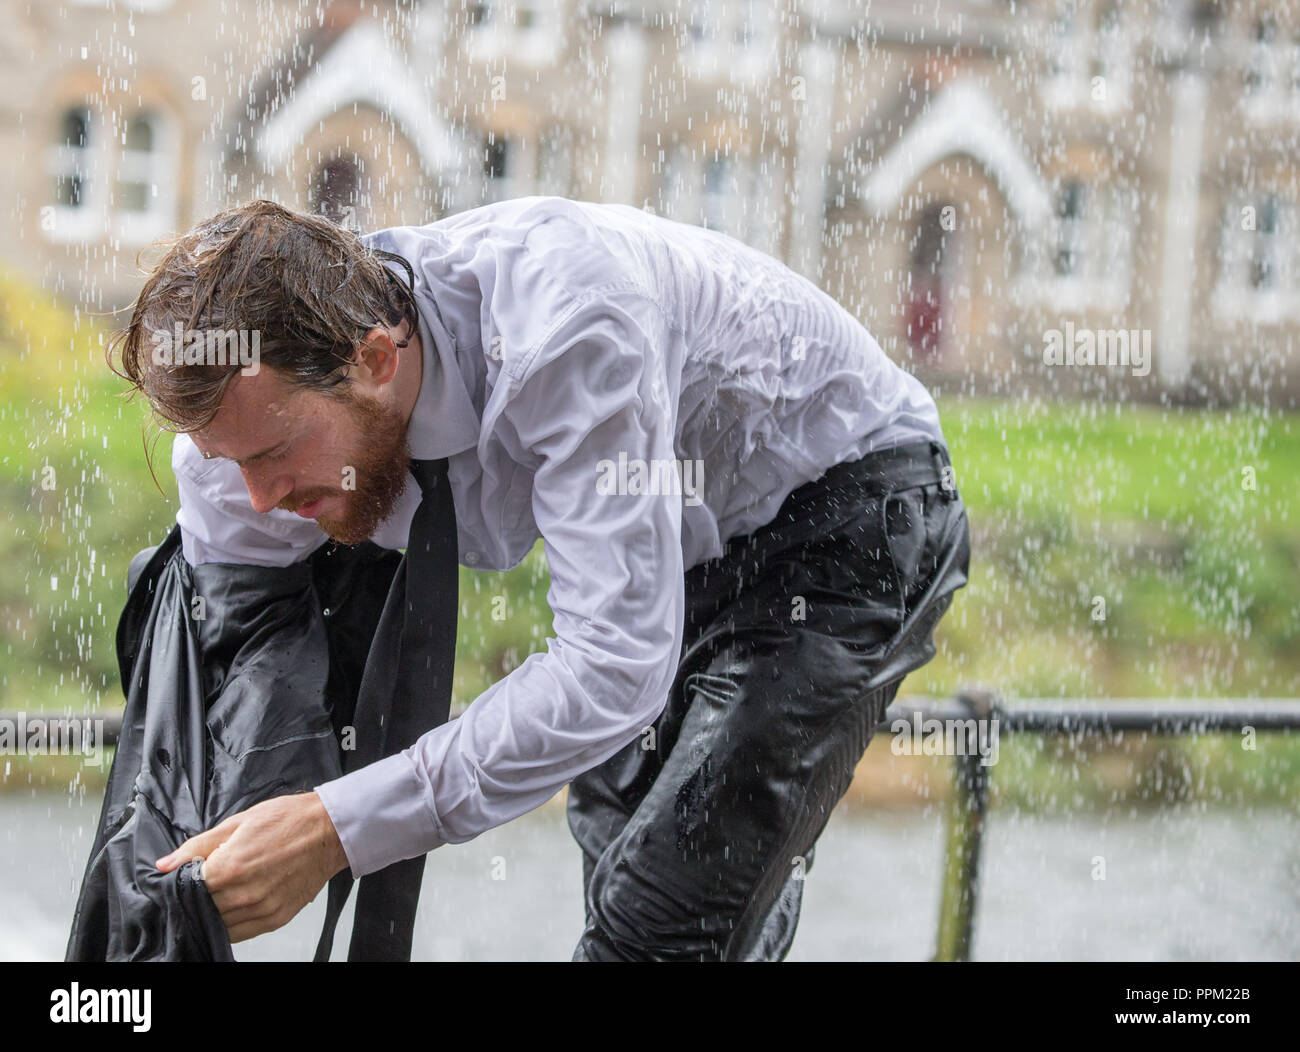 A man in a suit caught in a very heavy rain shower - Stock Image